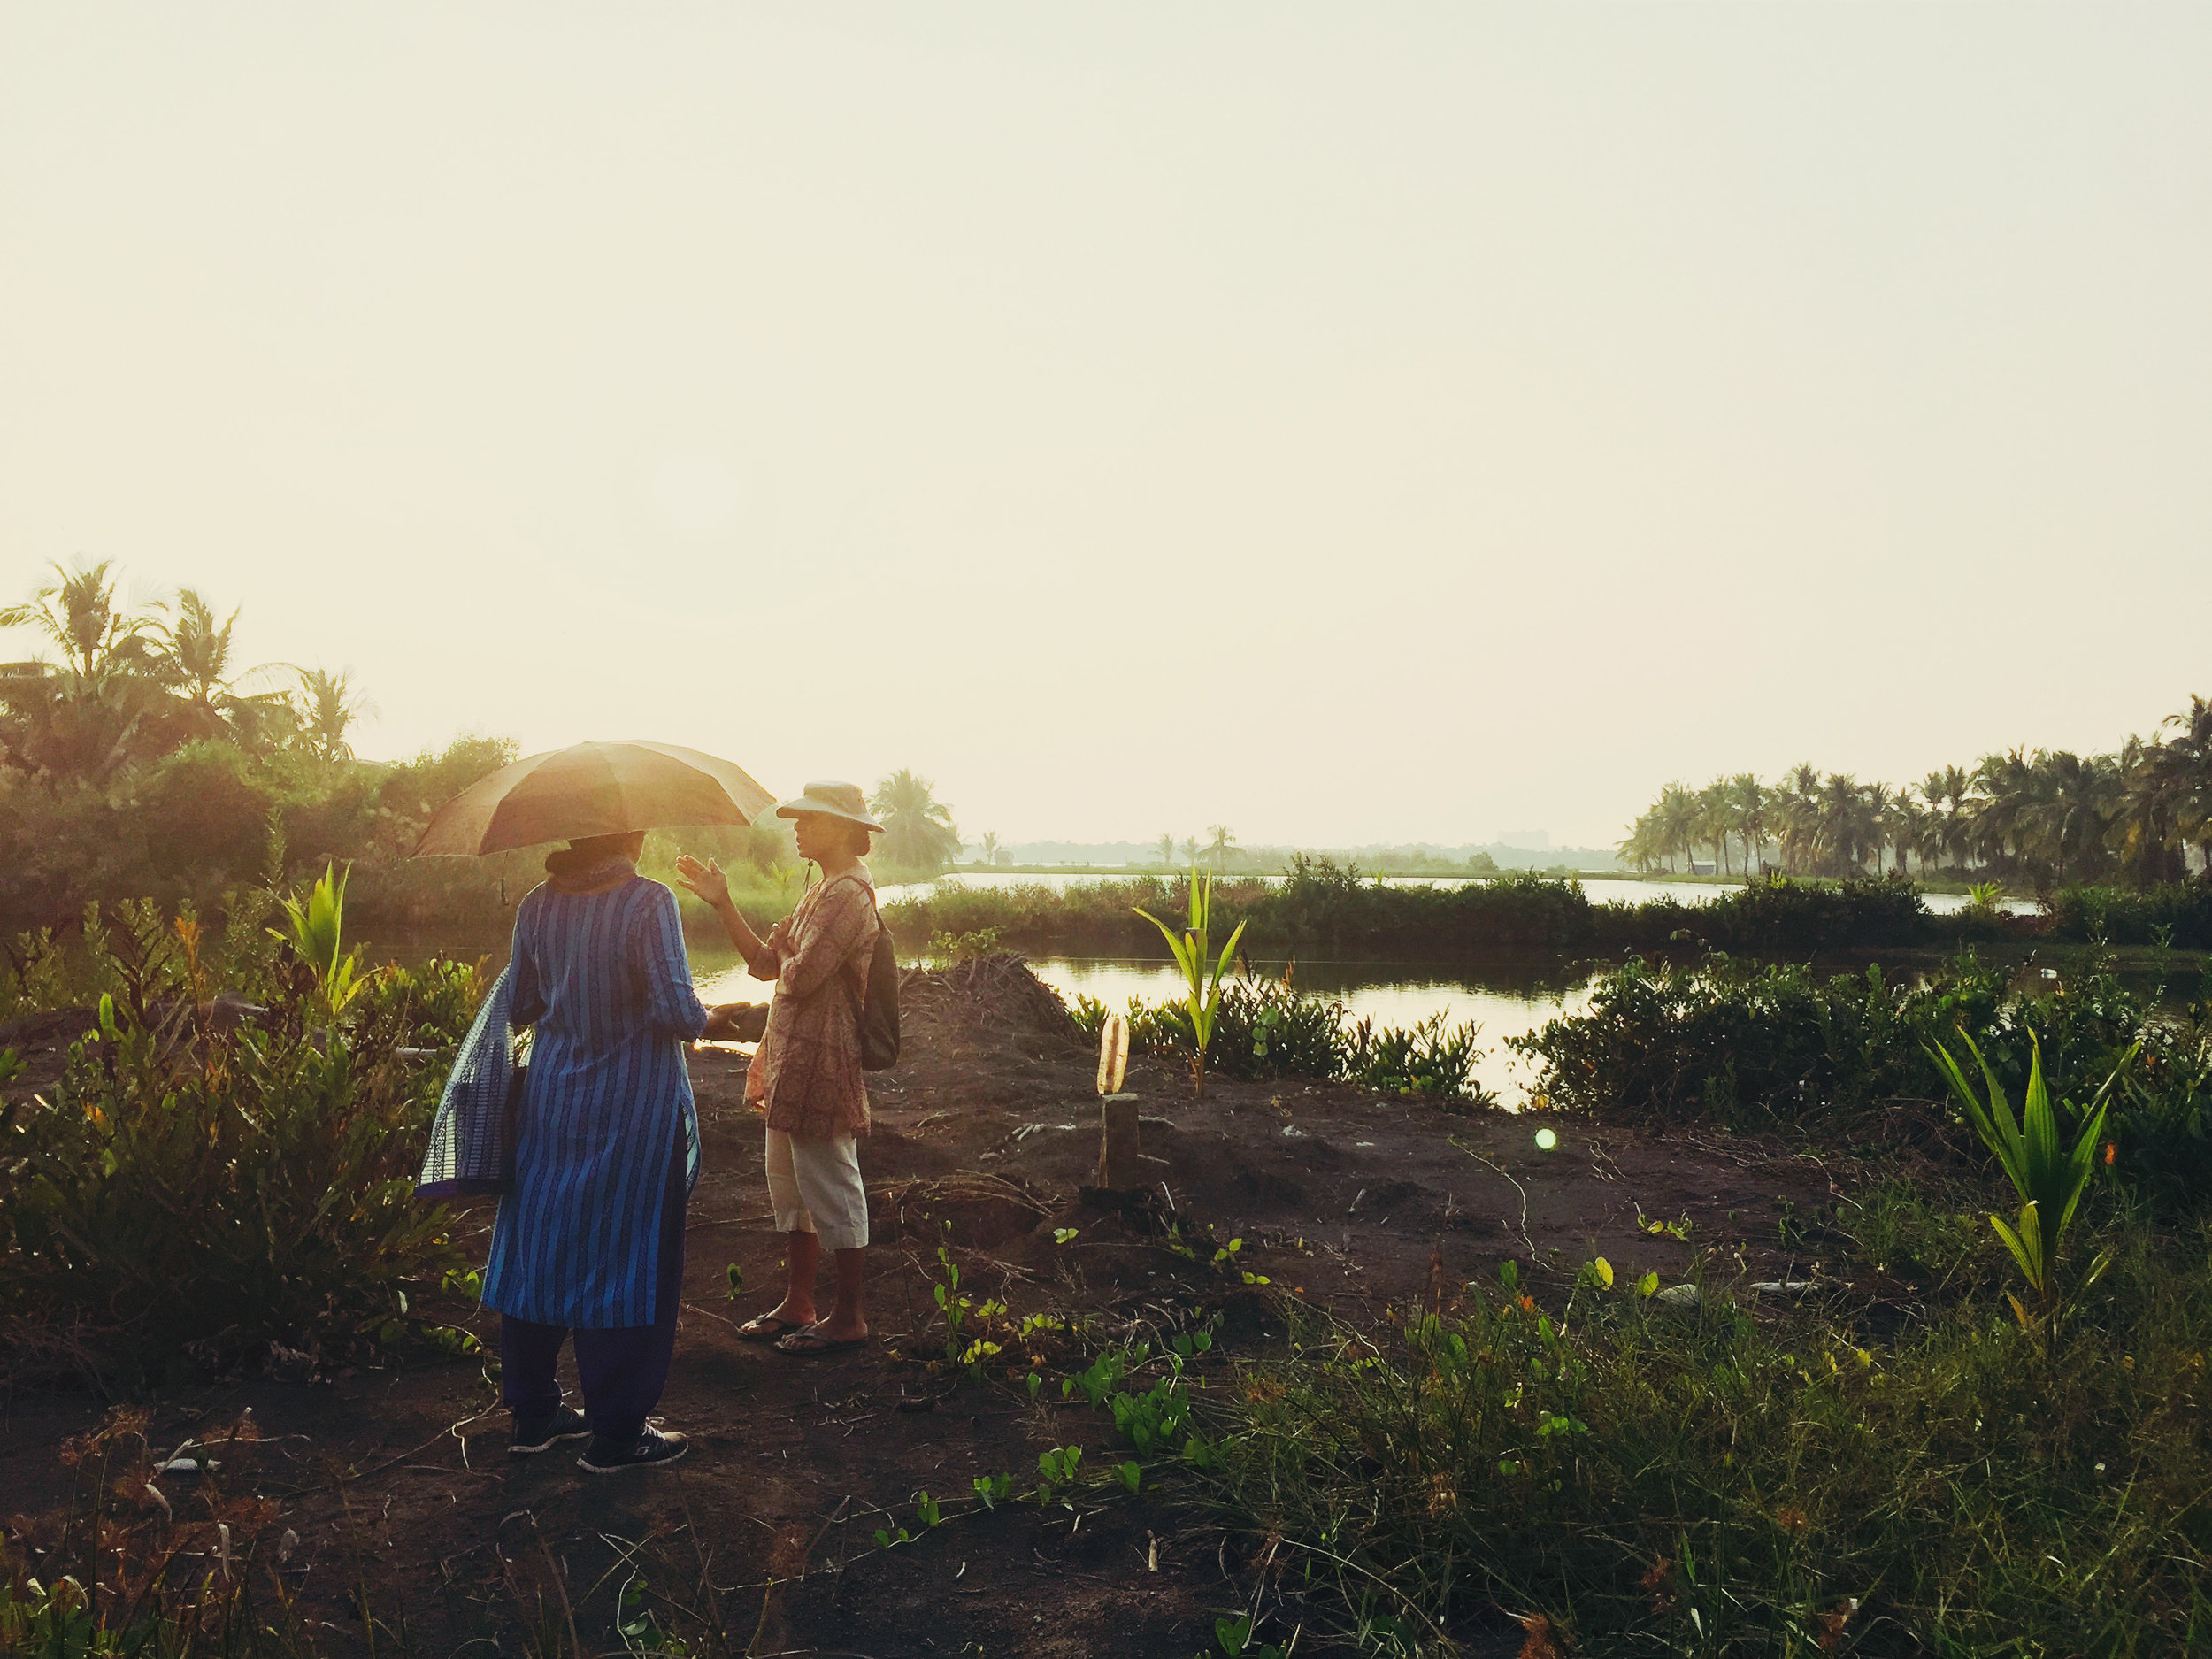 Anna Panangaden and Mary Mathew survey their marshland in Kerala, India.